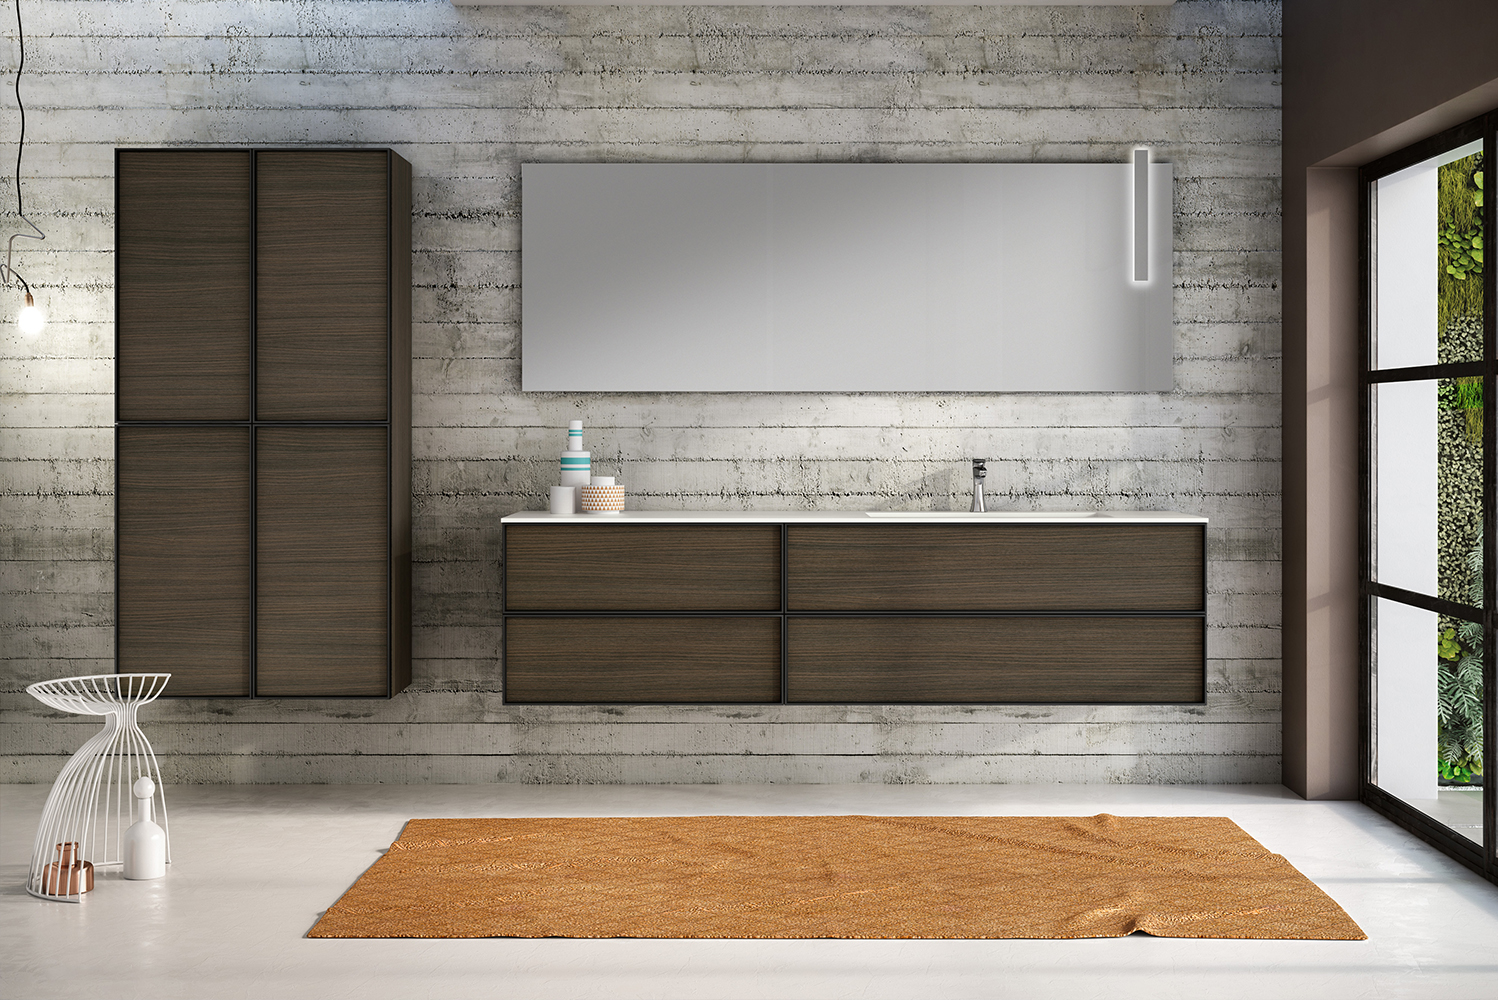 Hastings Tile & Bath launched a new modular vanity collection, Class. The